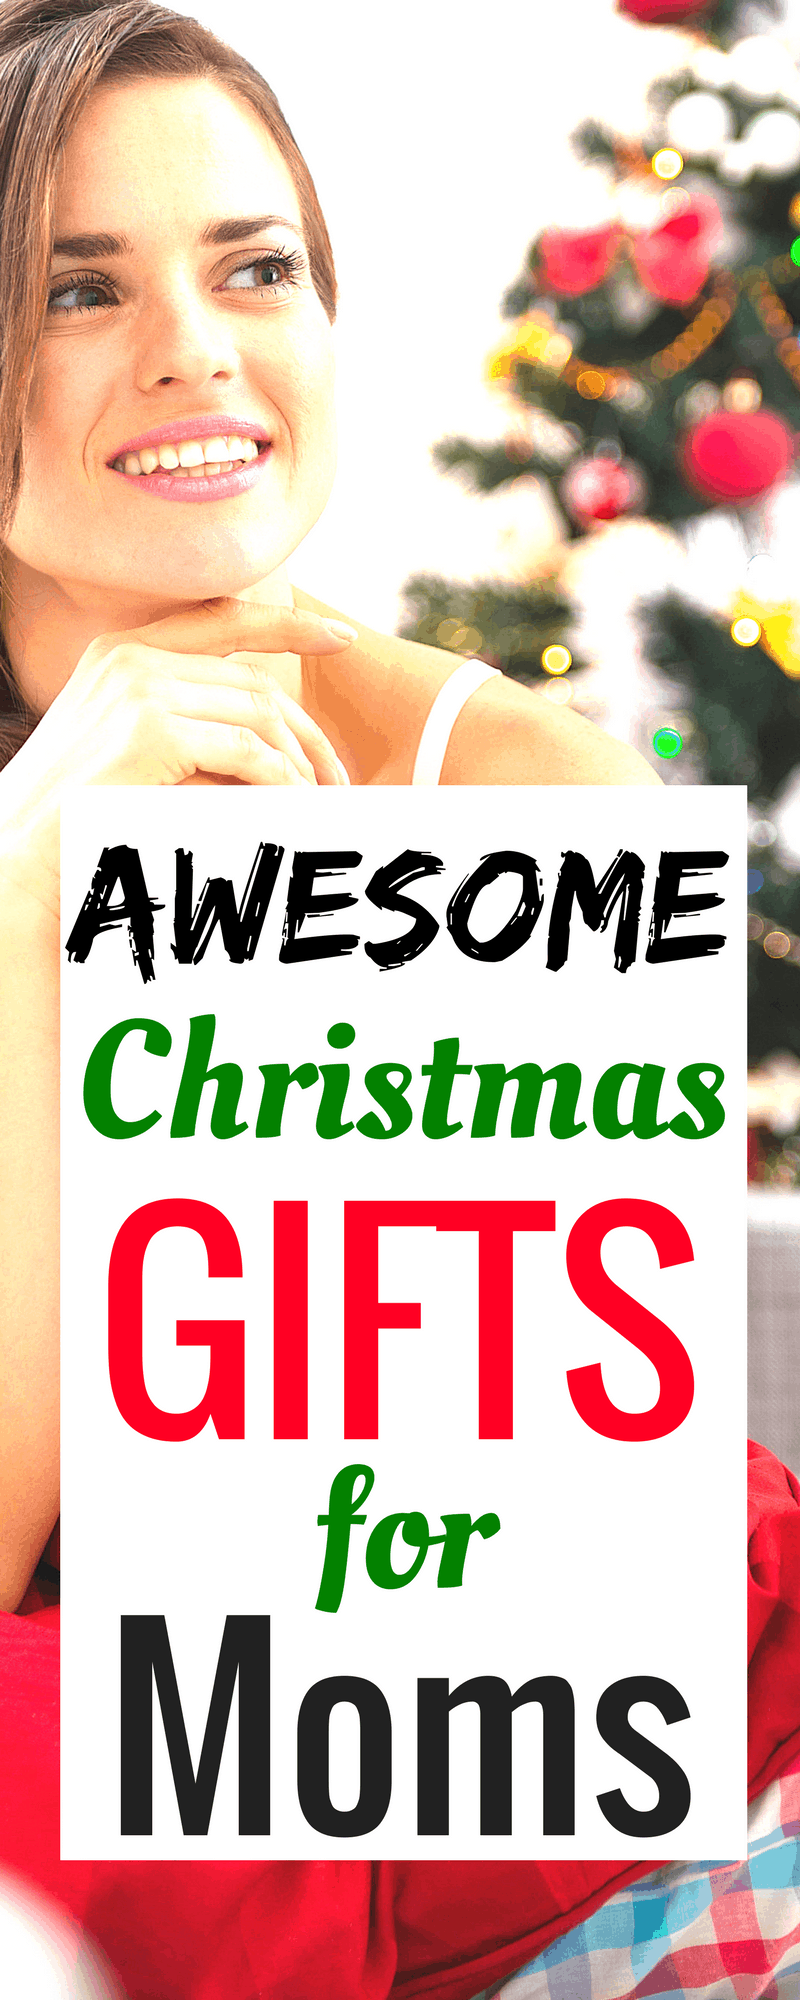 Awesome Christmas Gifts For Moms